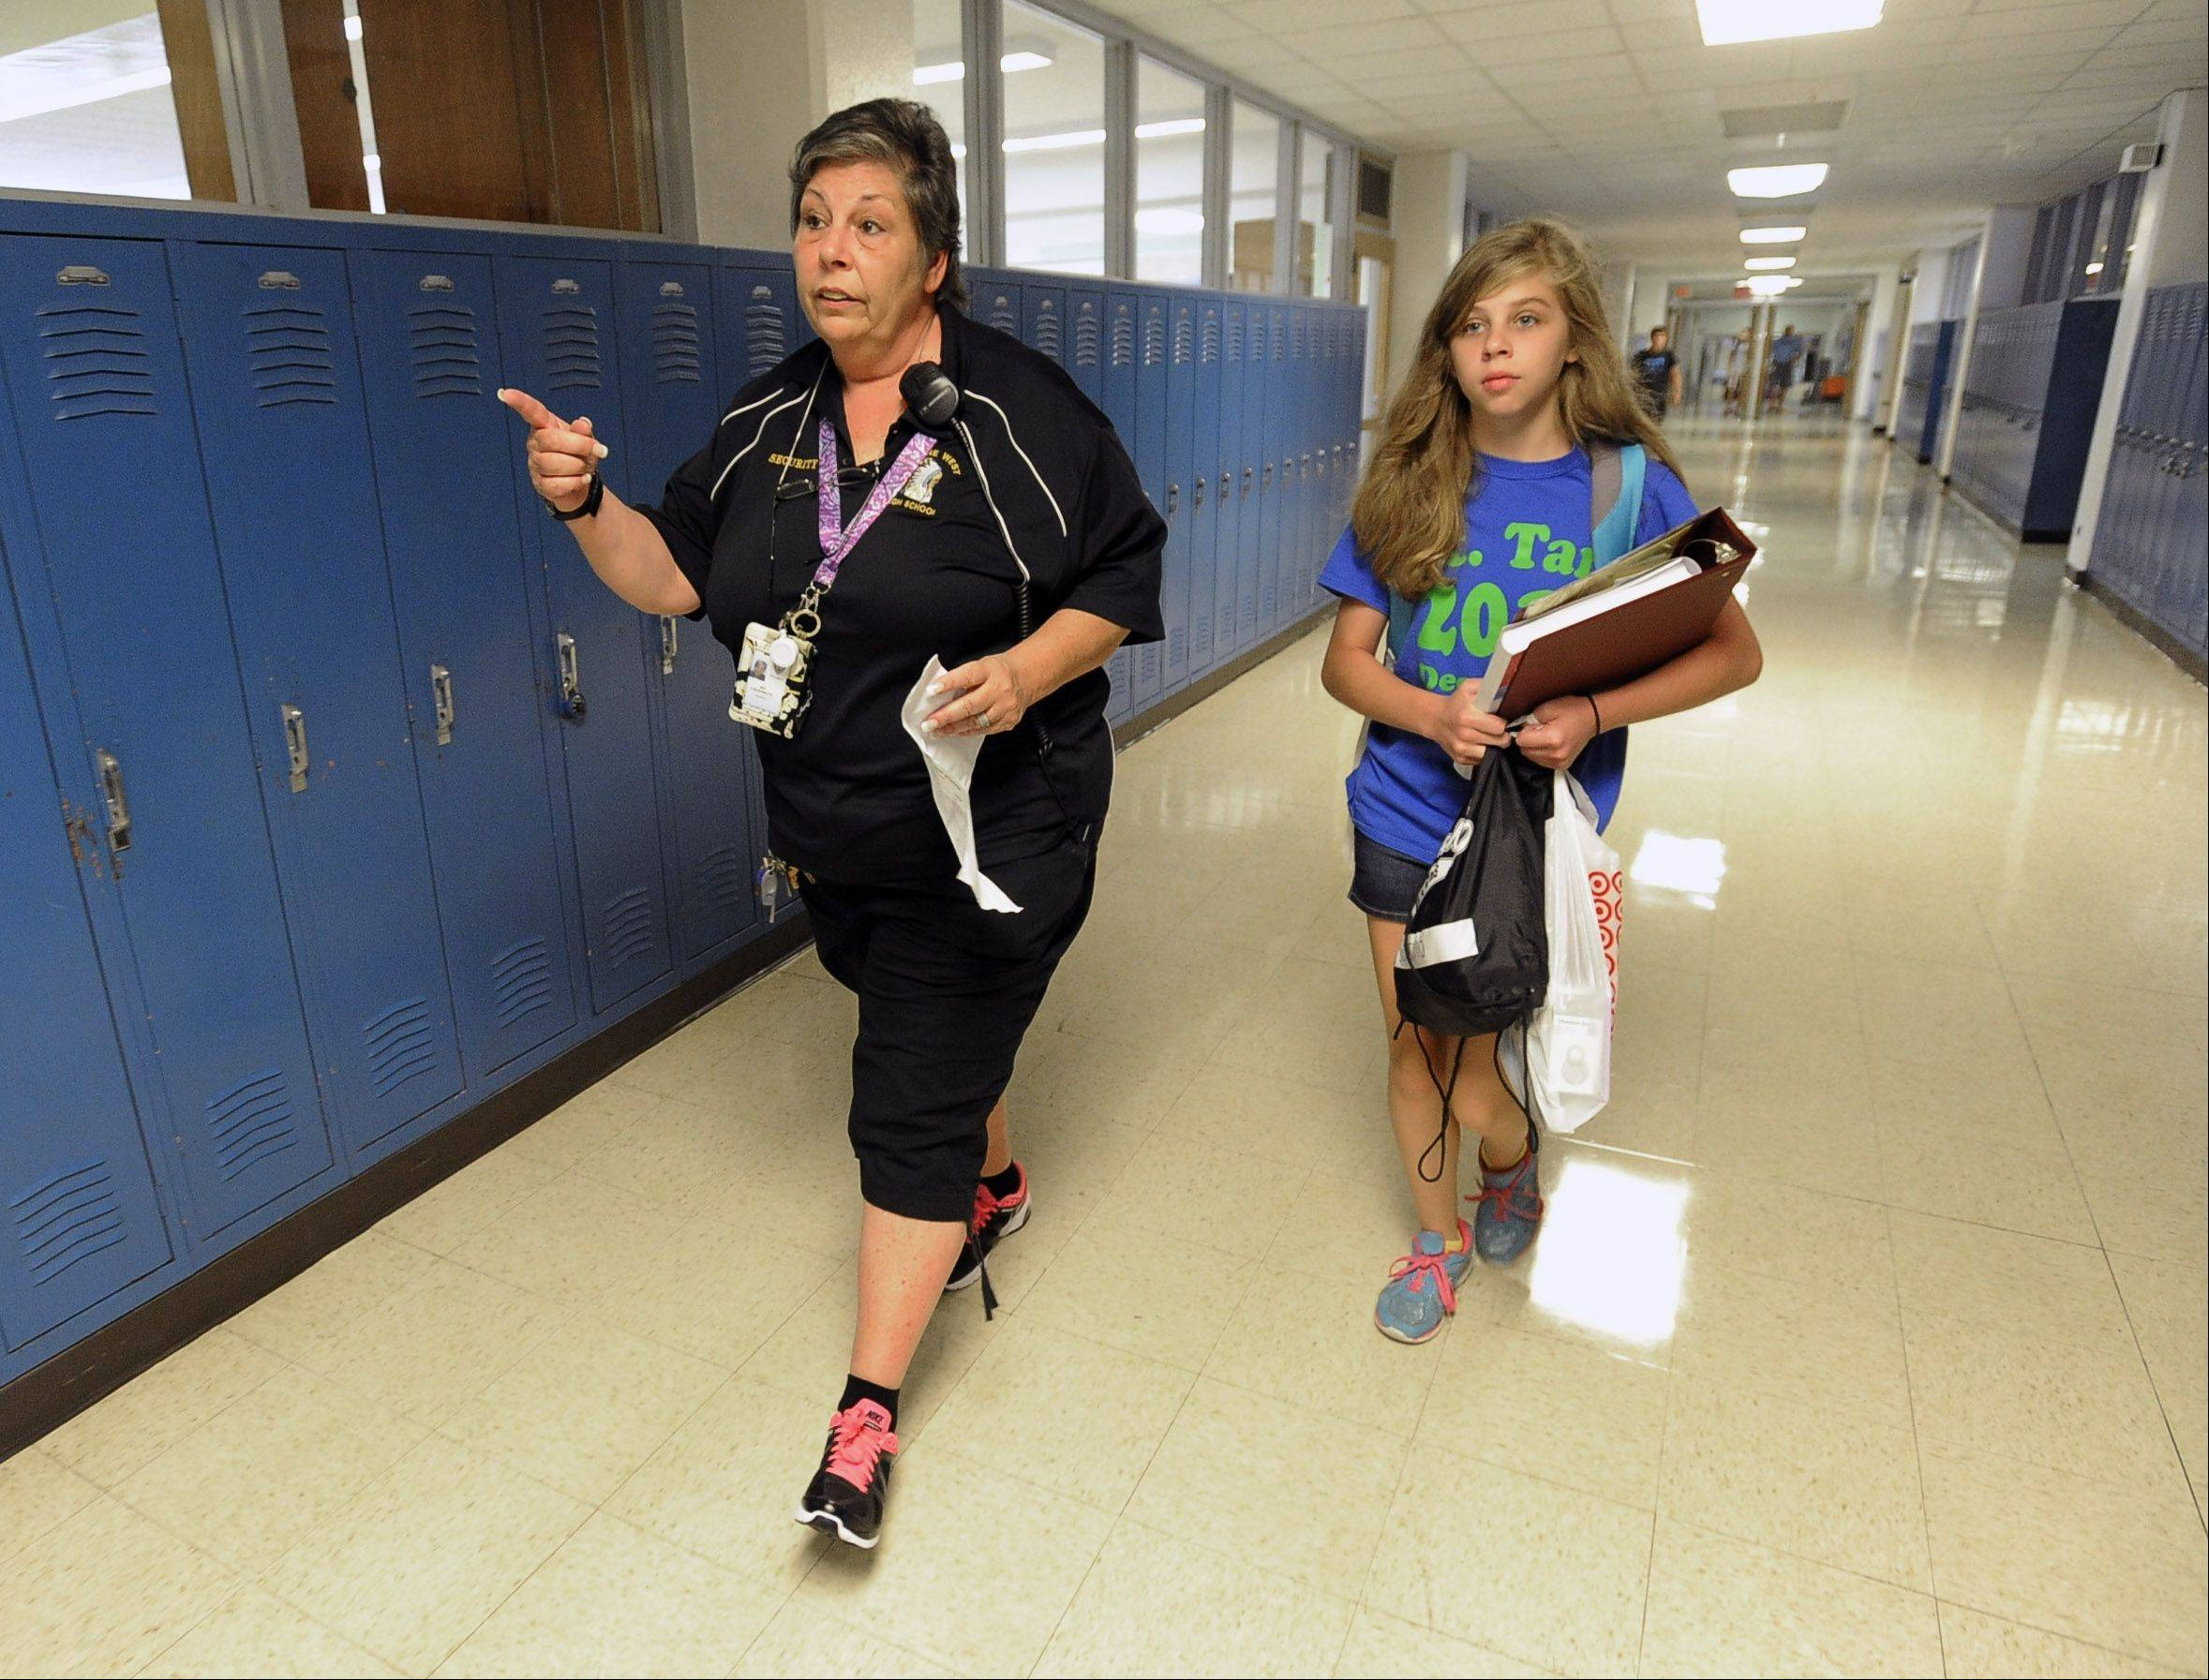 Security officer Karen Lindermuth helps freshman Kathleen Saverino, 14, to her locker Monday on her first of classes at Maine West High School in Des Plaines.